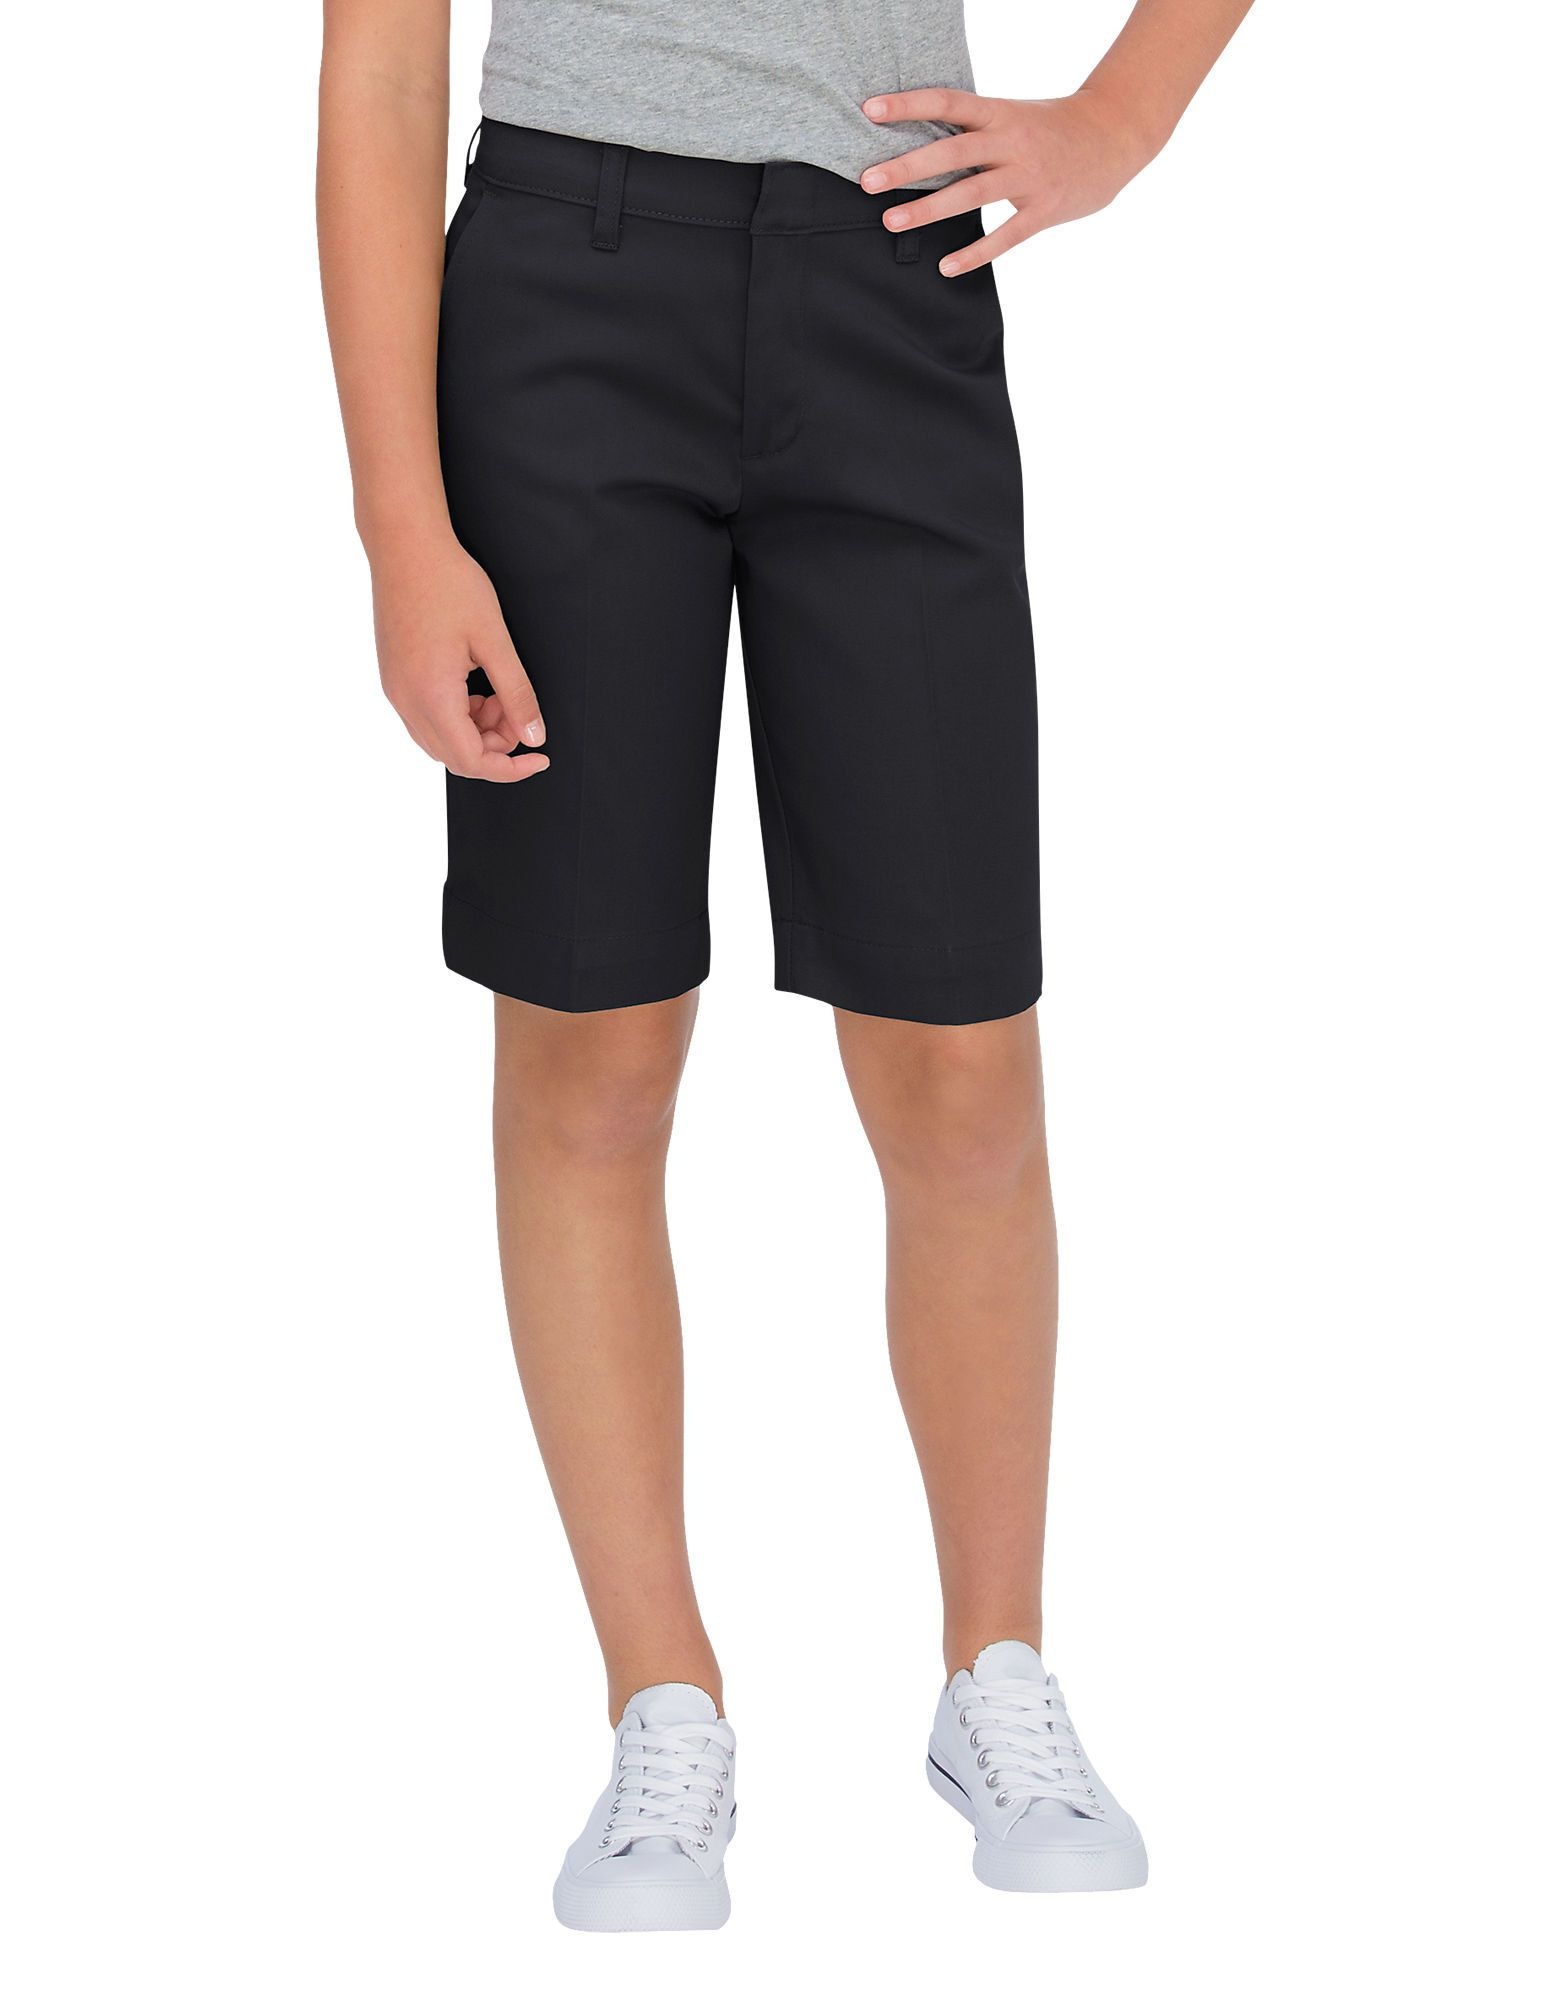 Girls Classic Fit Bermuda Stretch Twill Shorts (Plus), 10.5 - 20.5-DK